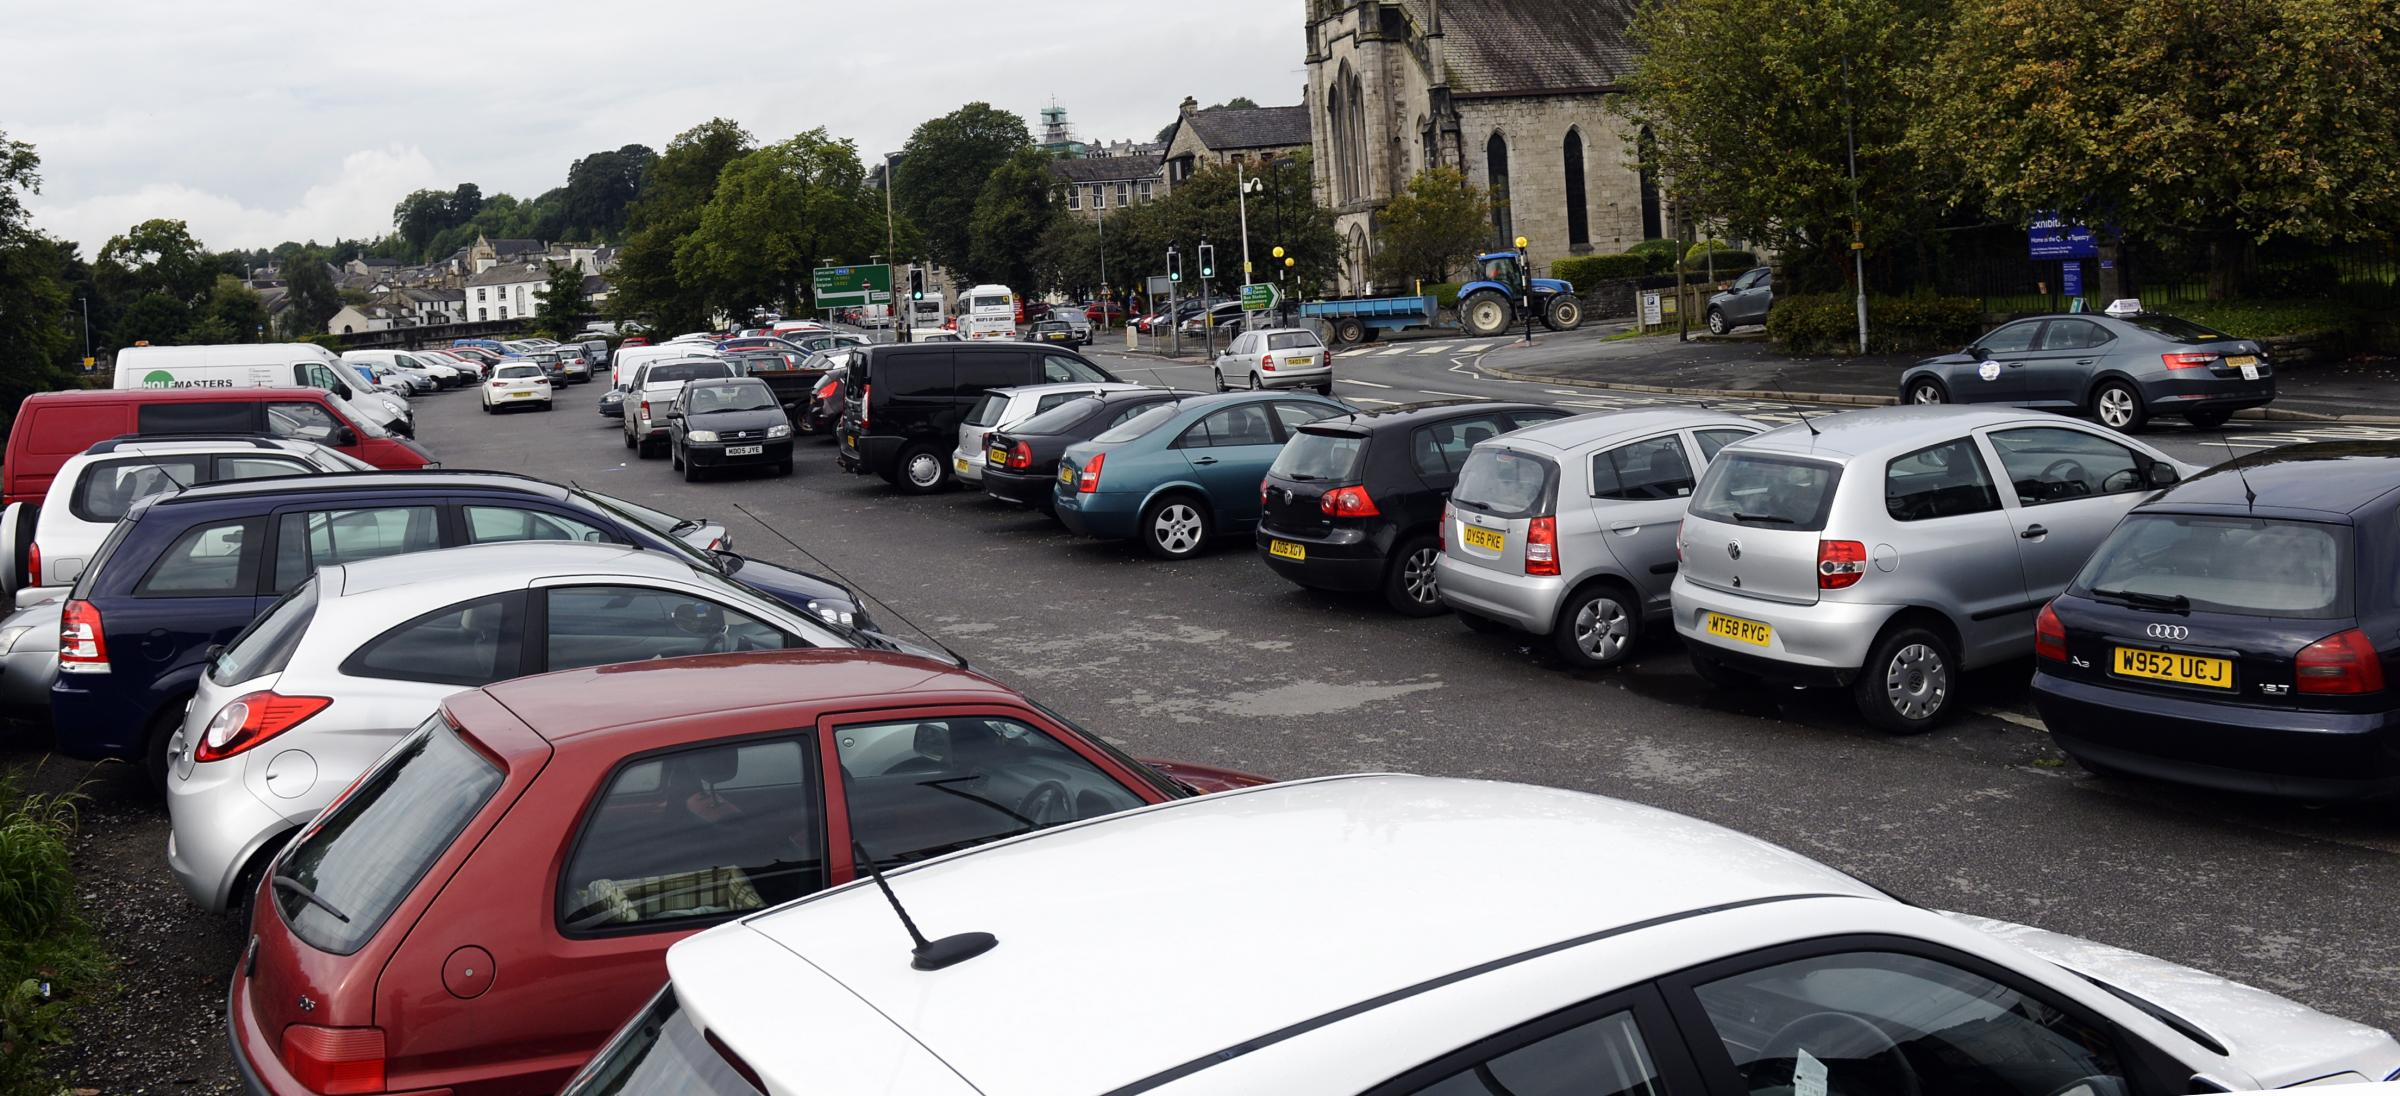 Comment Ending Parking Free For All At New Road Kendal Is The Right Decision The Westmorland Gazette